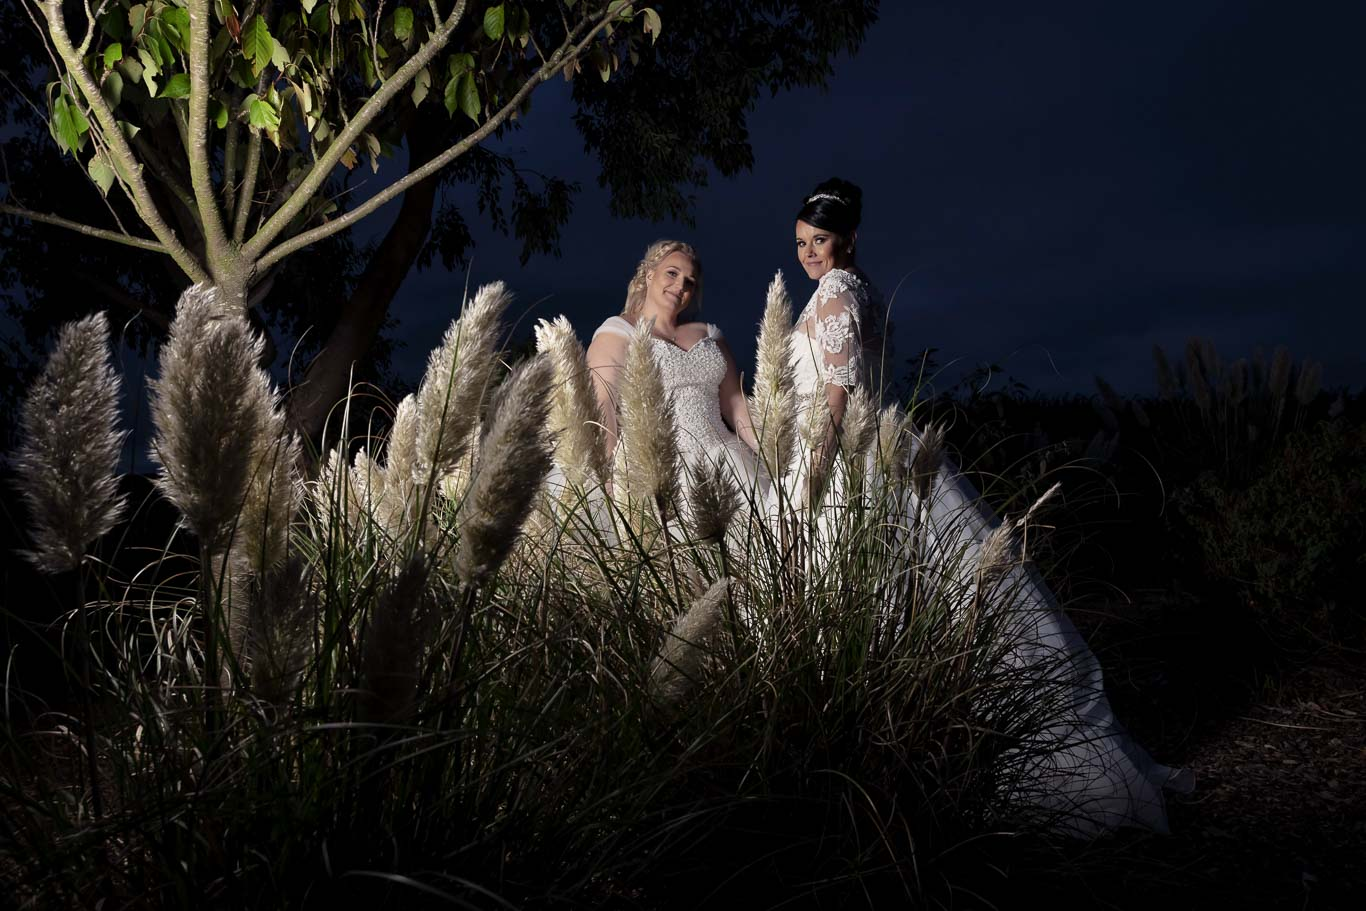 Two Brides Together at Night